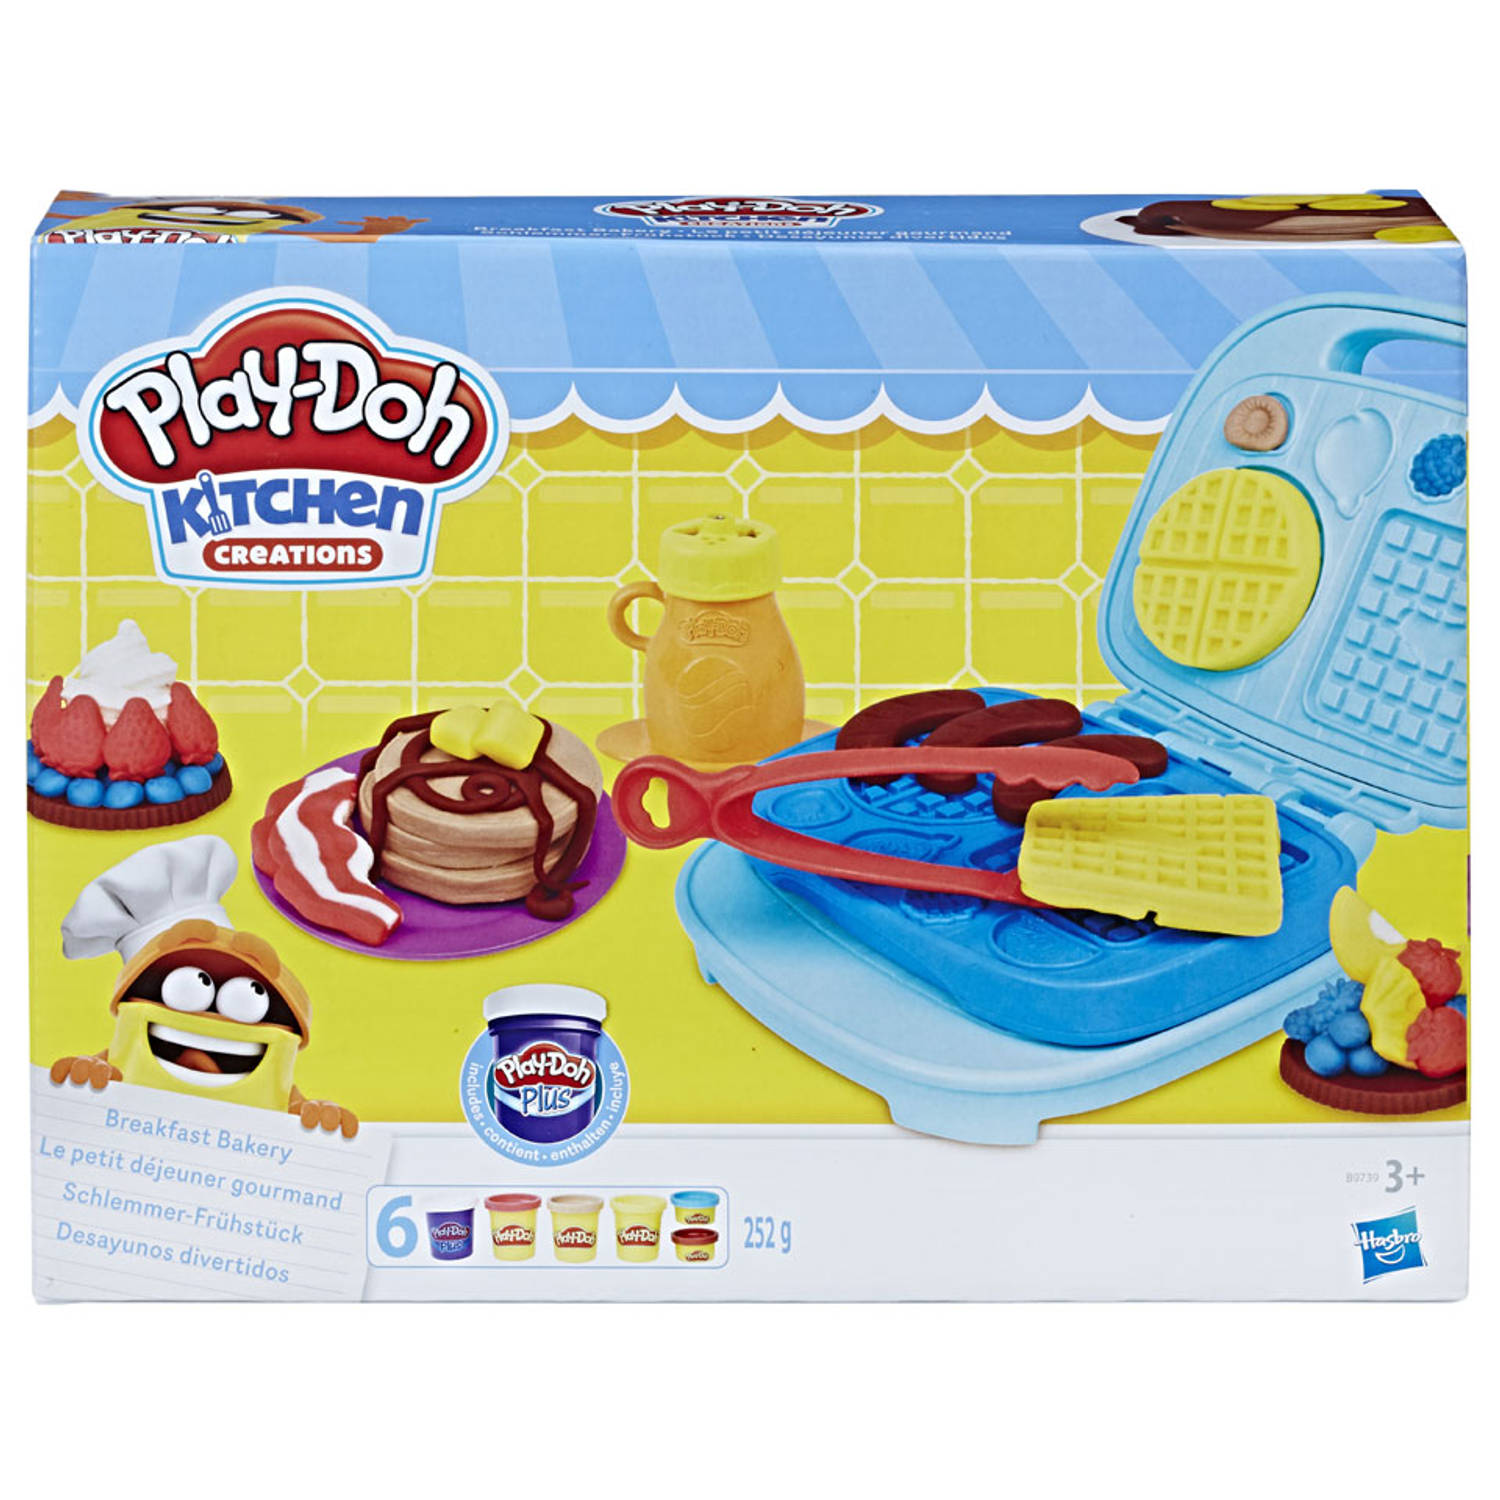 Play-doh Kitchen Creations Ontbijt Speelset